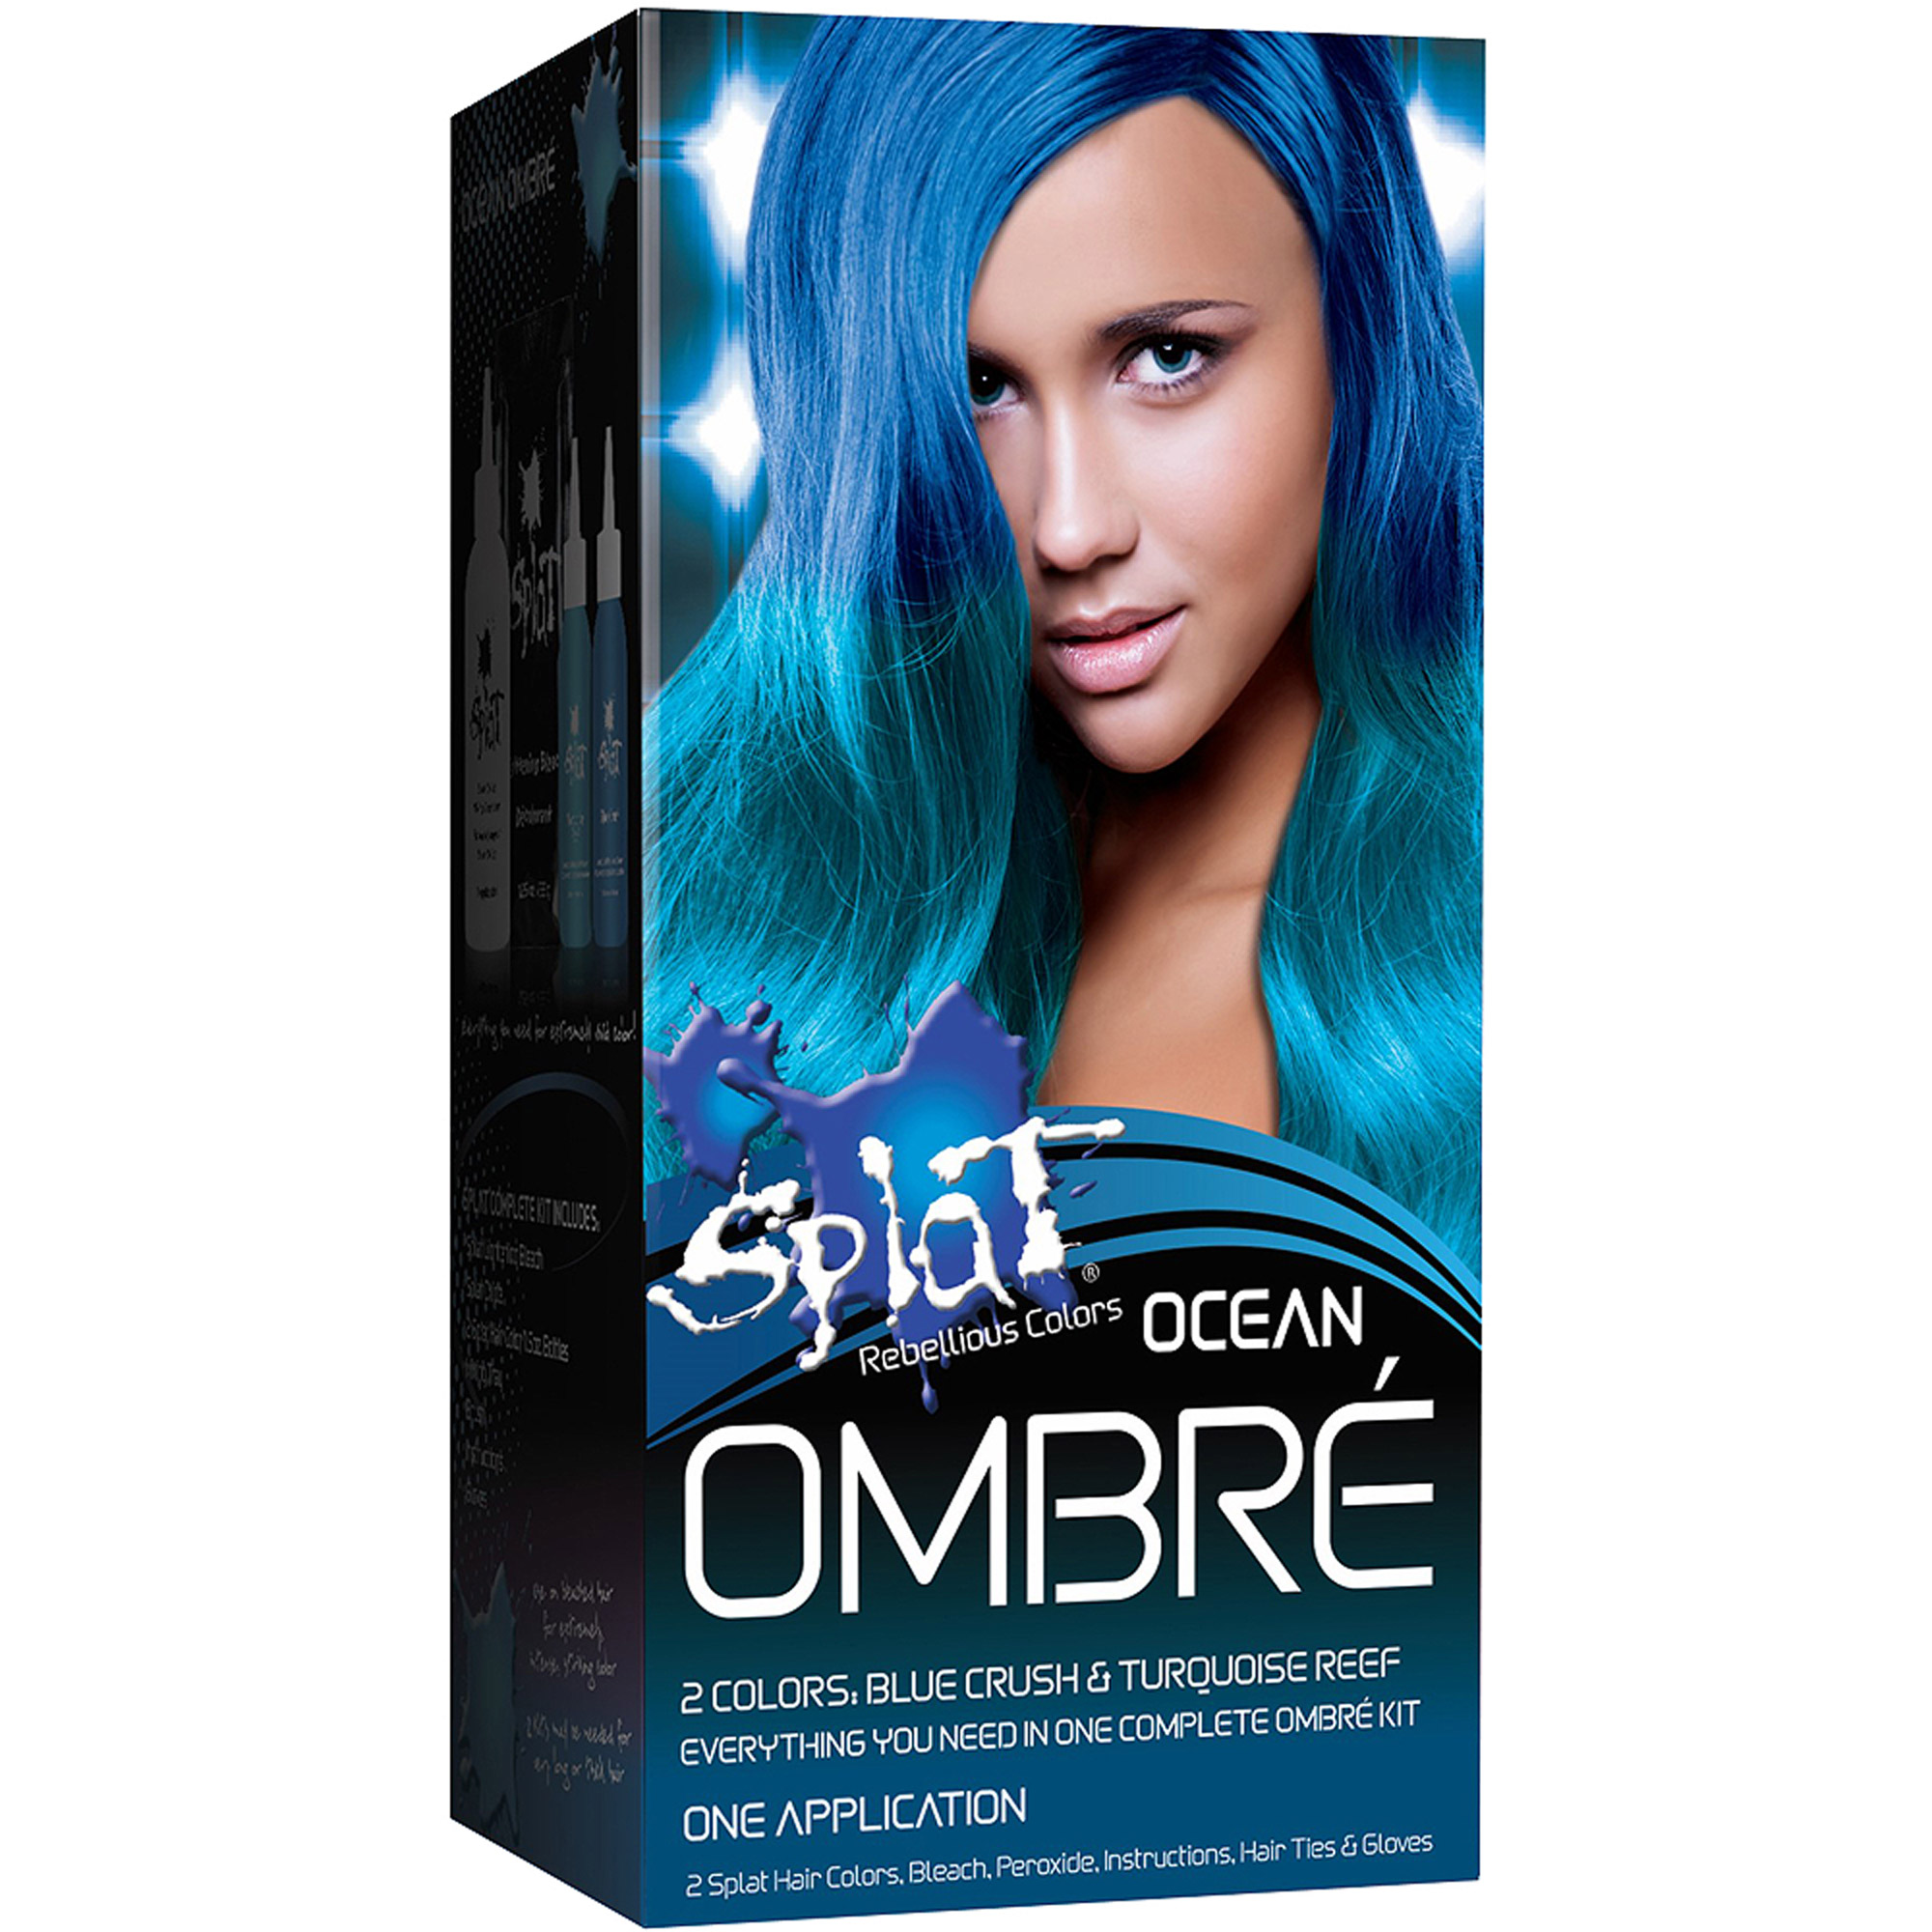 Splat Rebellious Colors Ombre Semi Perm Hair Color Kit Fire Can Last Up To 6 Weeks Com